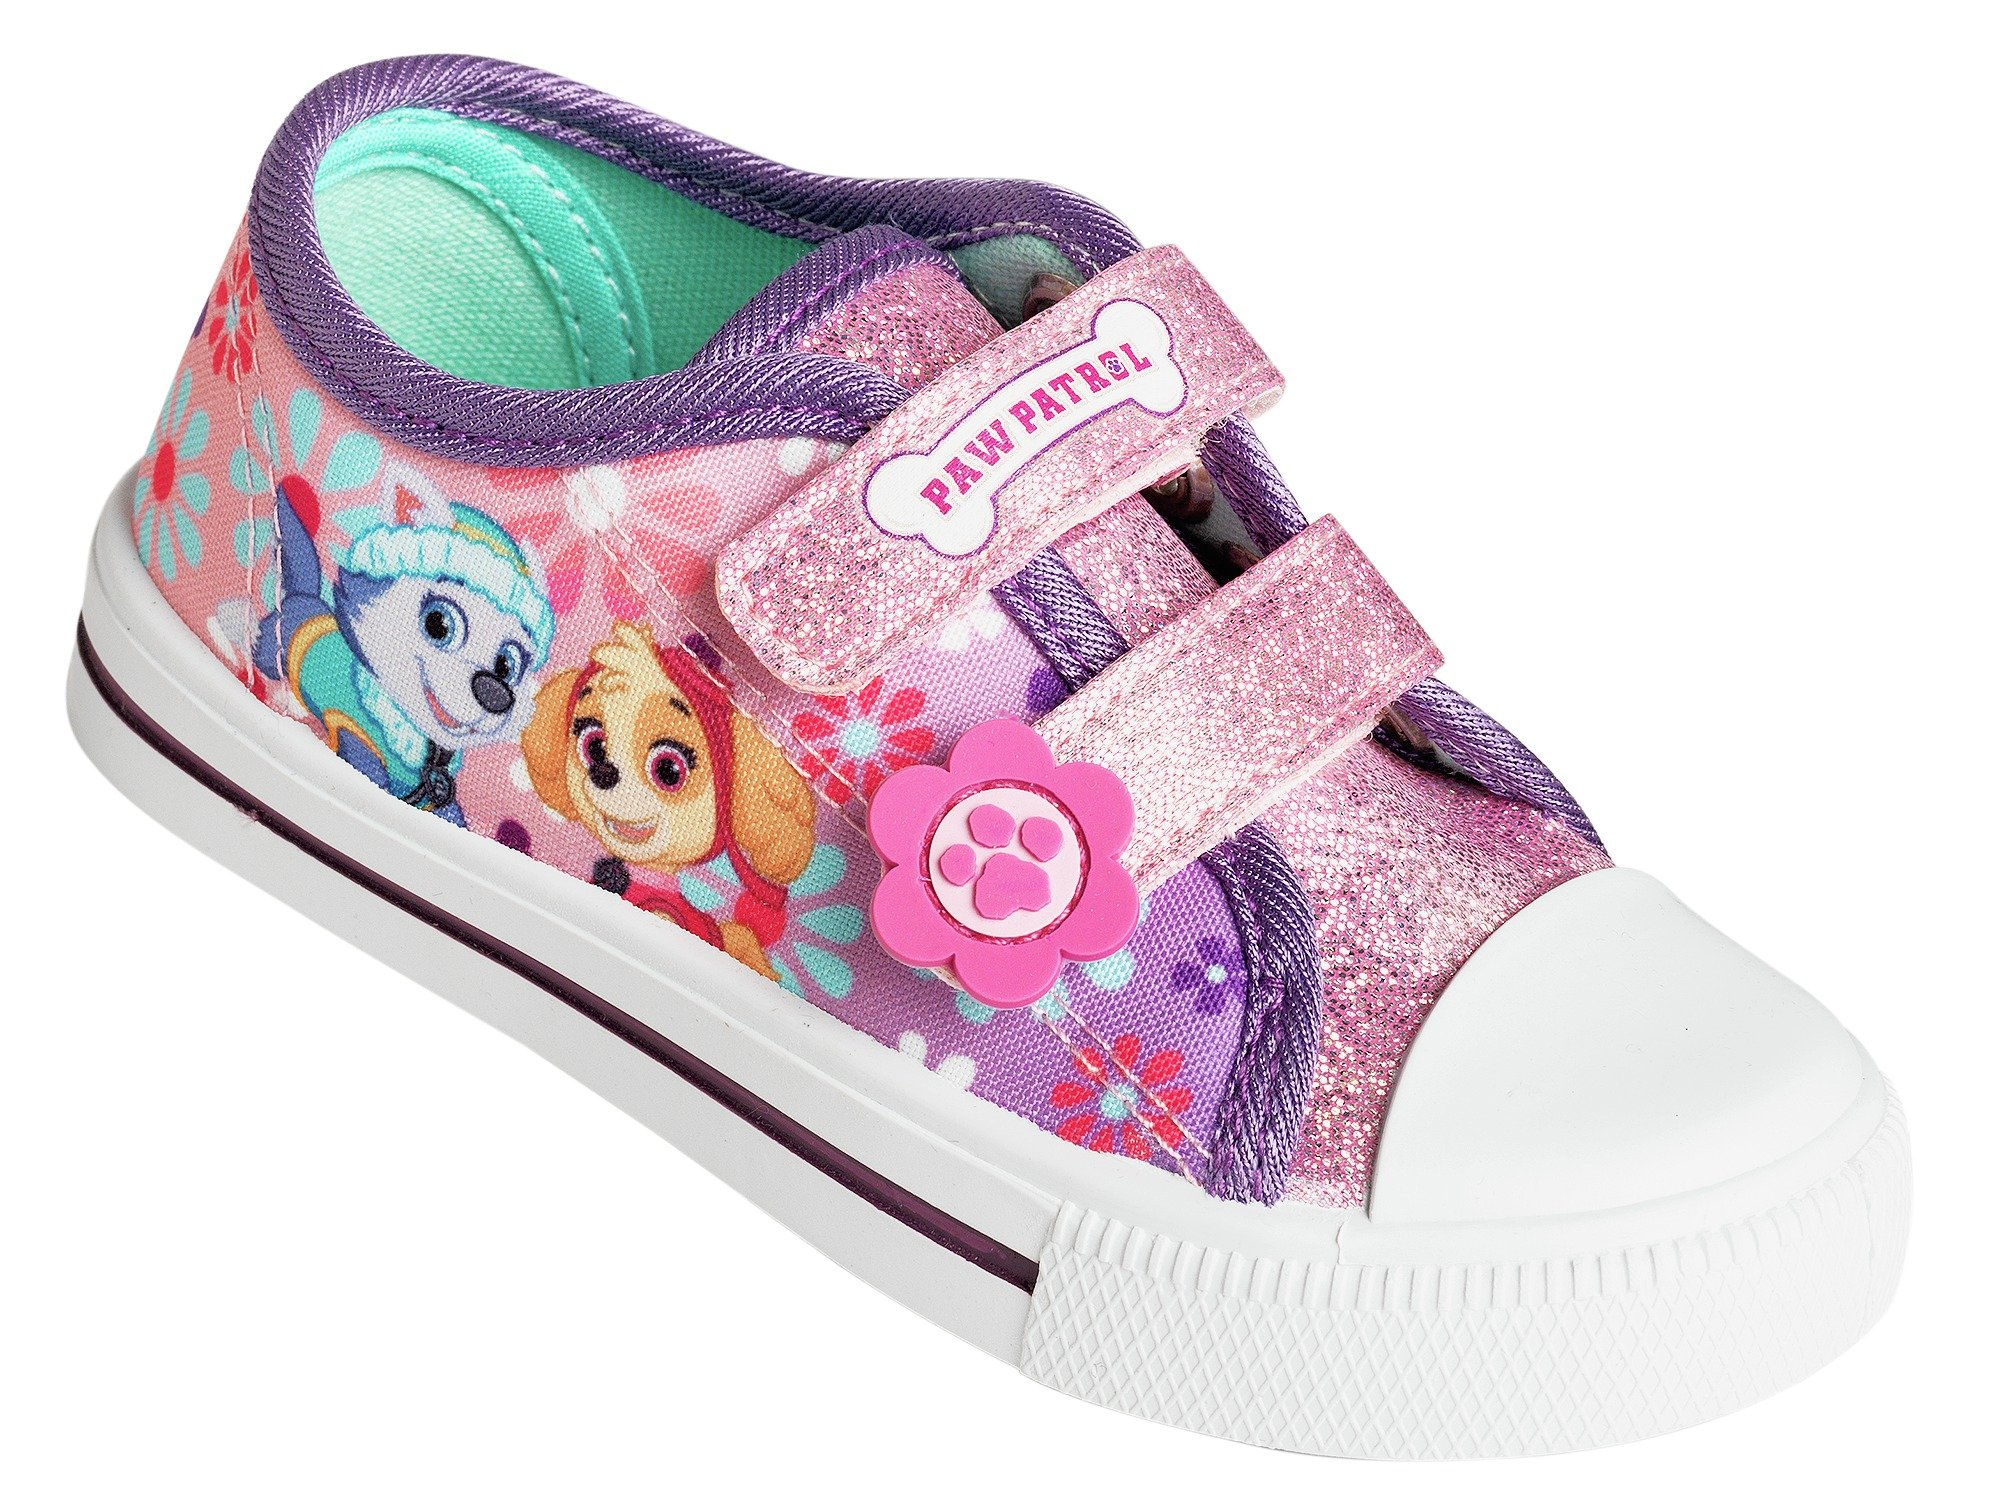 Image of PAW Patrol - Girls Pink Canvas Trainers - Size 5